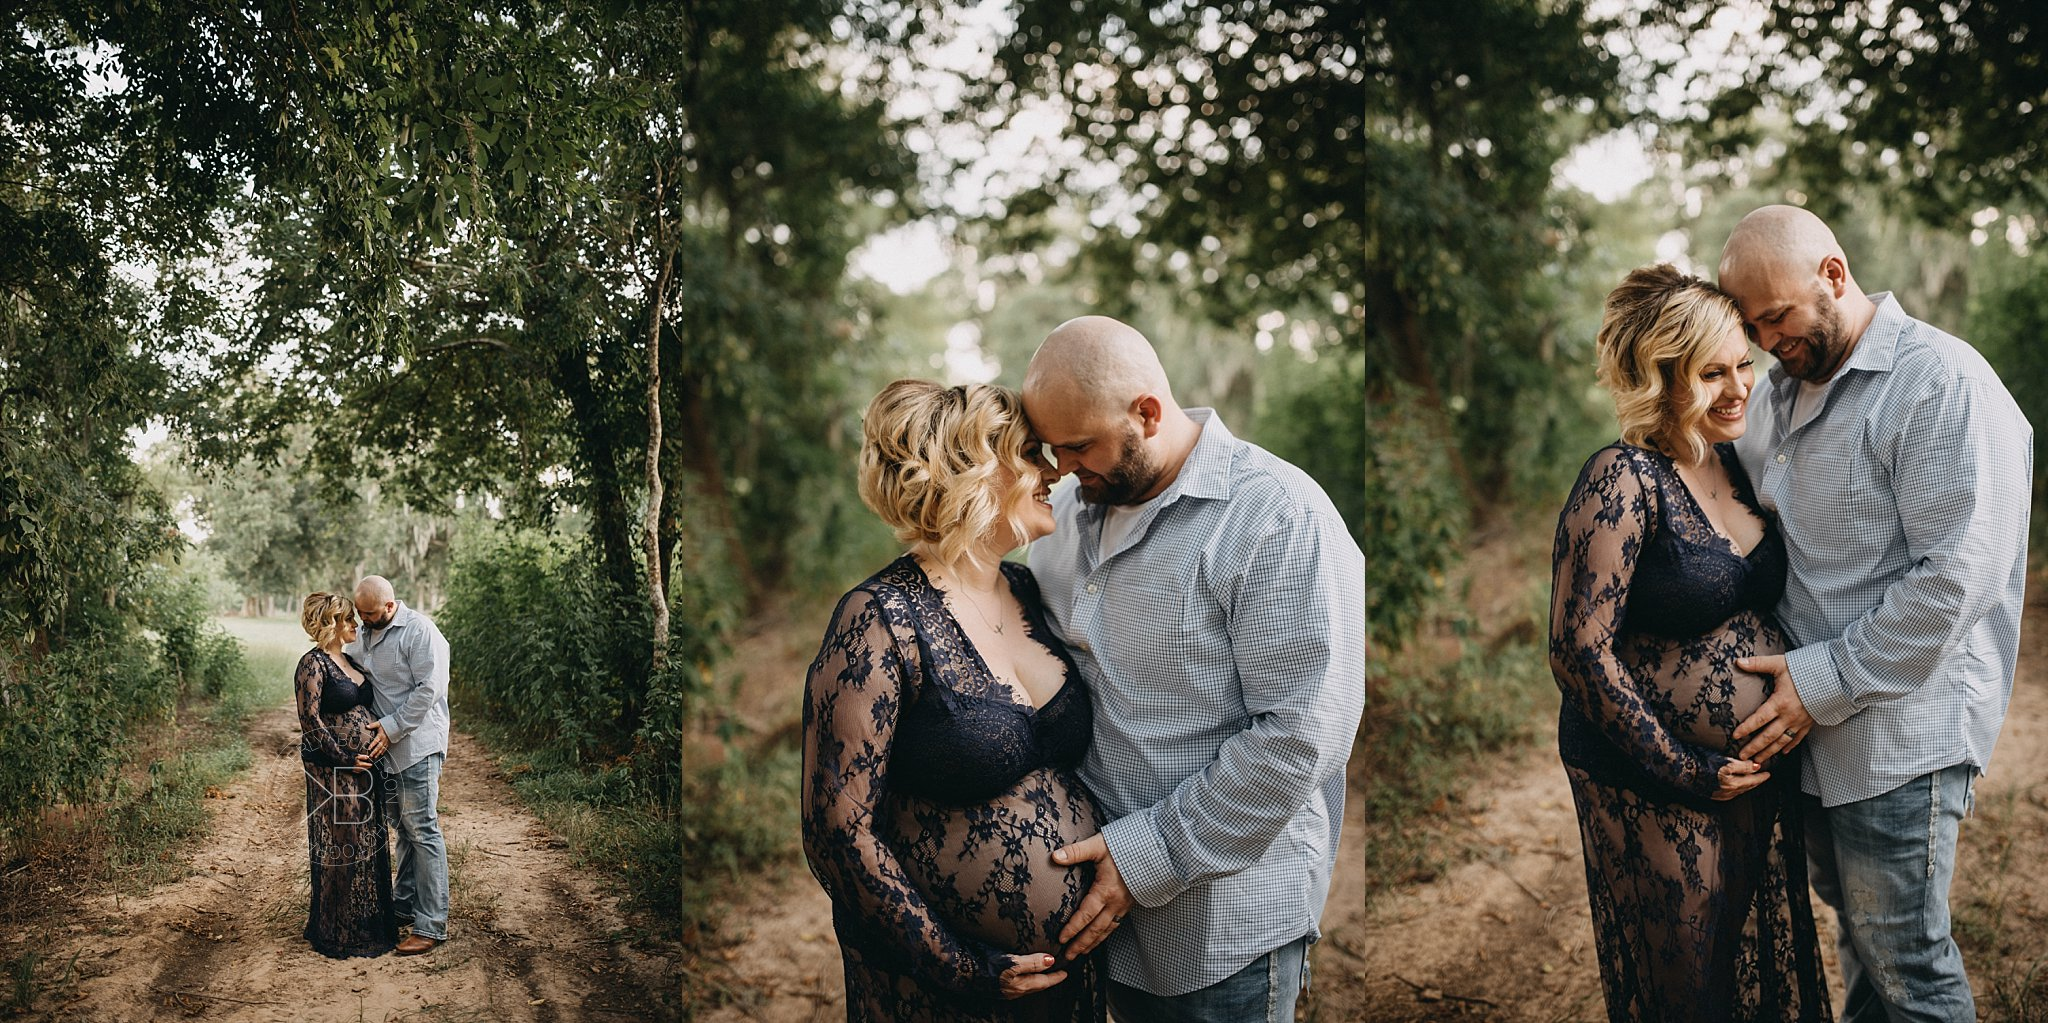 Houston Texas Maternity Photographer Rustic Path Location